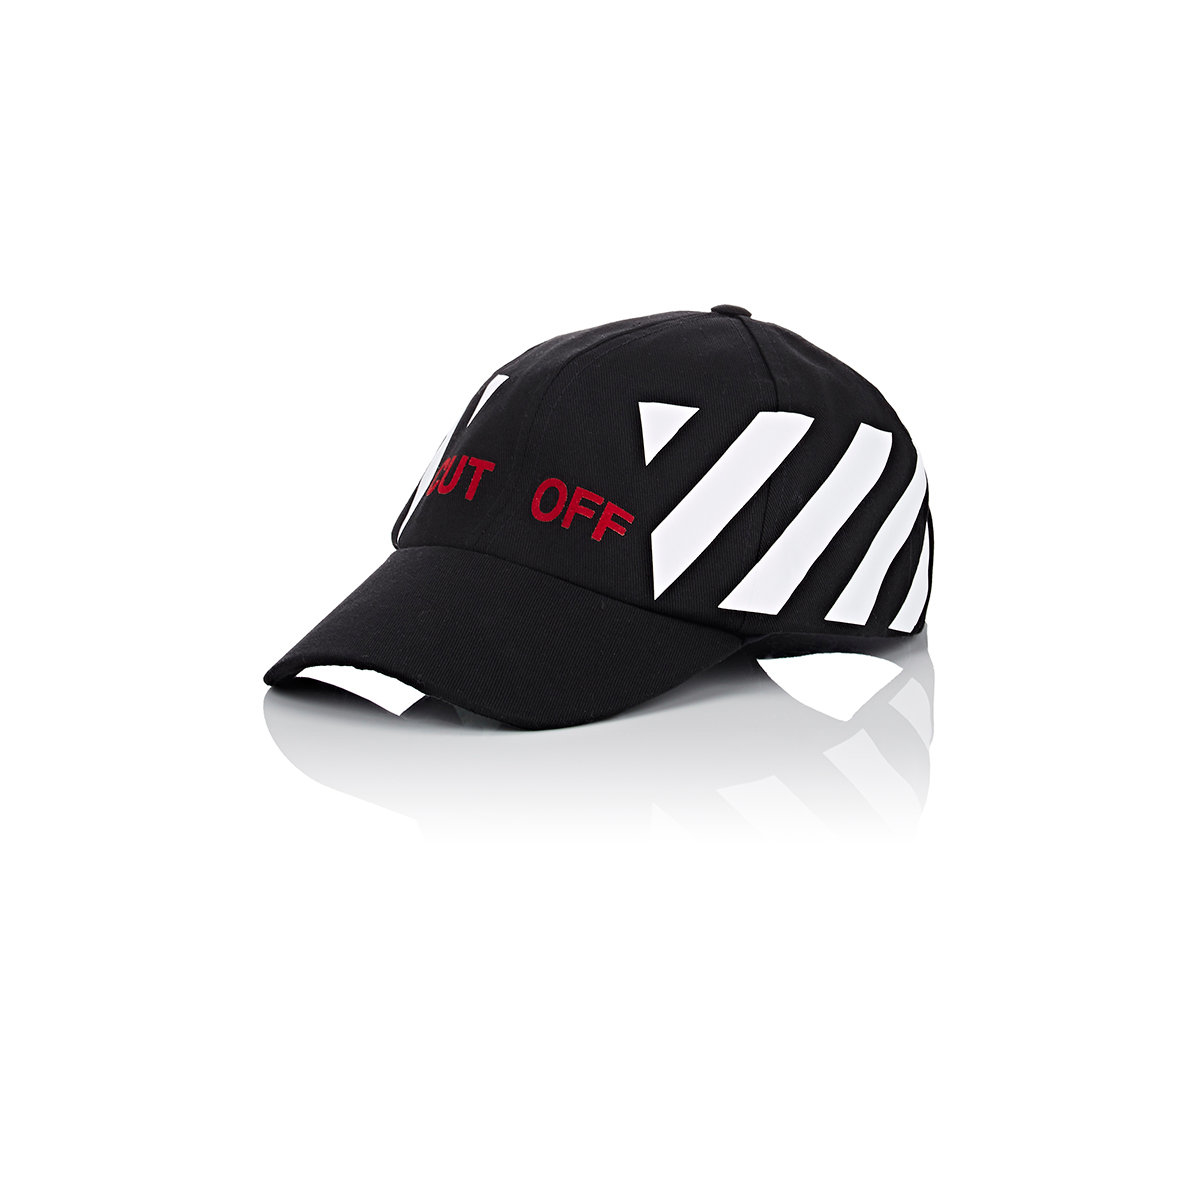 186ad95f980758 Off-White c/o Virgil Abloh cut Off Cotton Baseball Cap in Black for ...